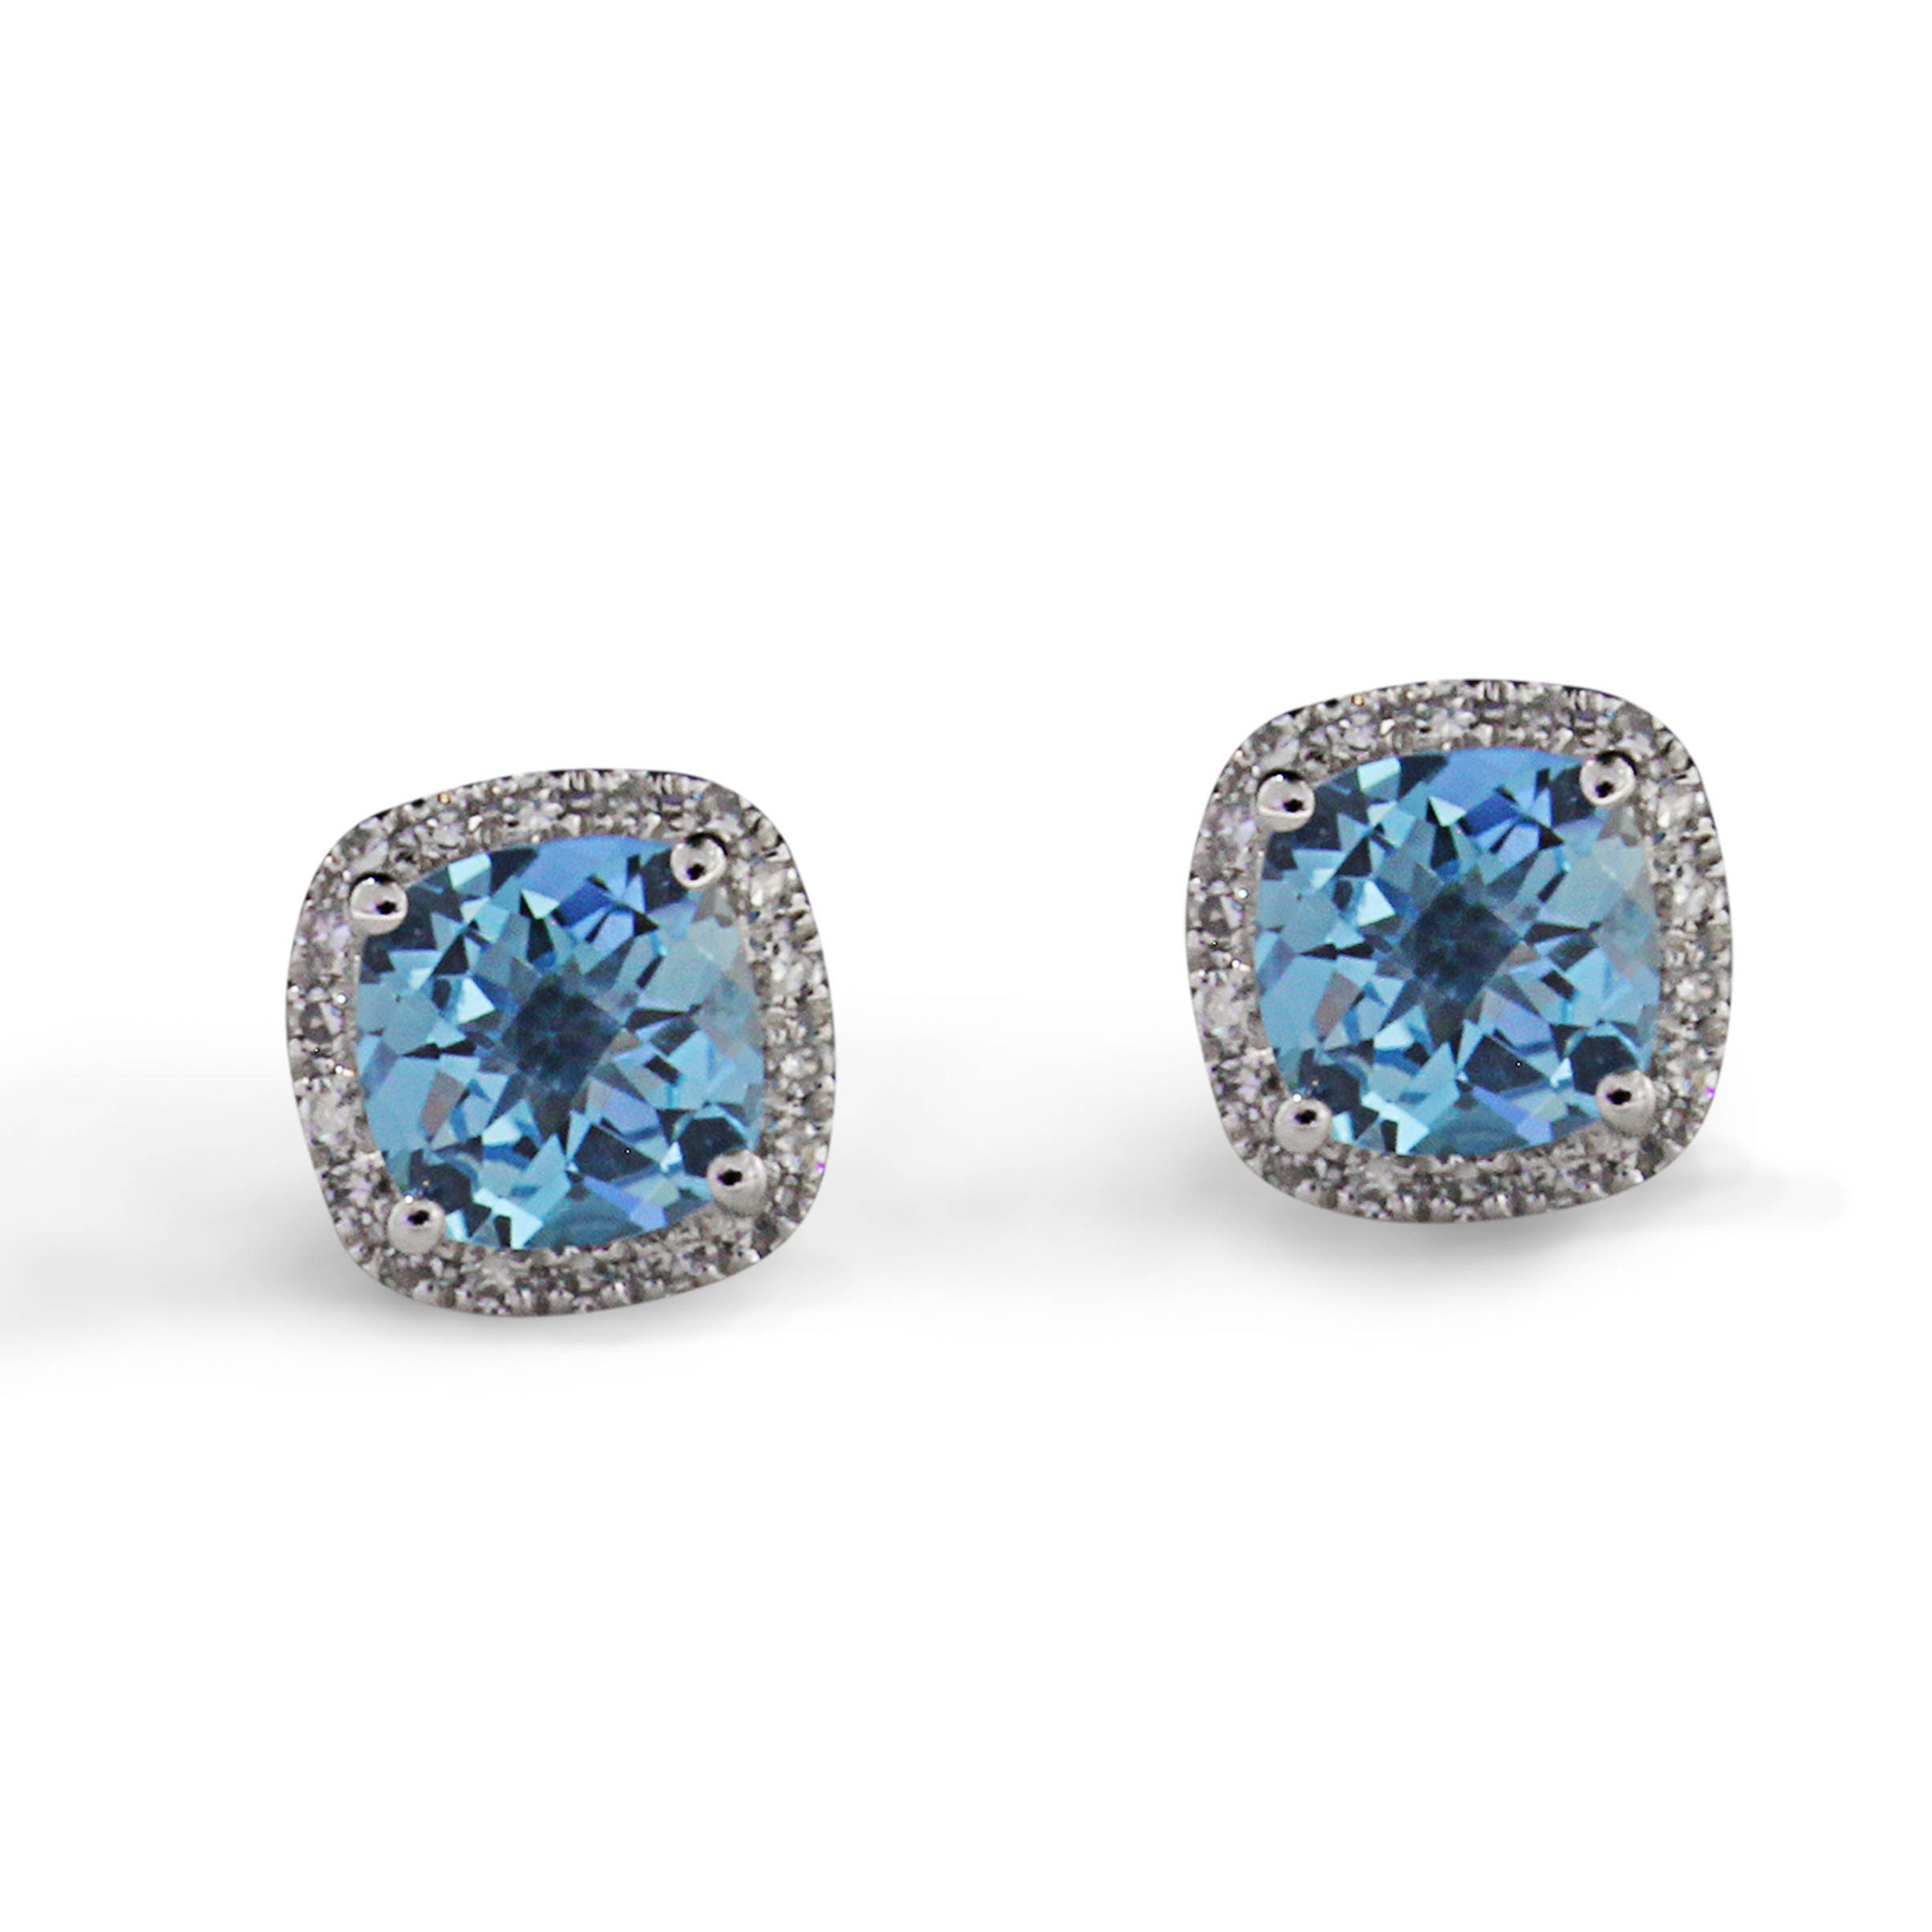 stud products image earrings triangle dana lyn diamond blue pav